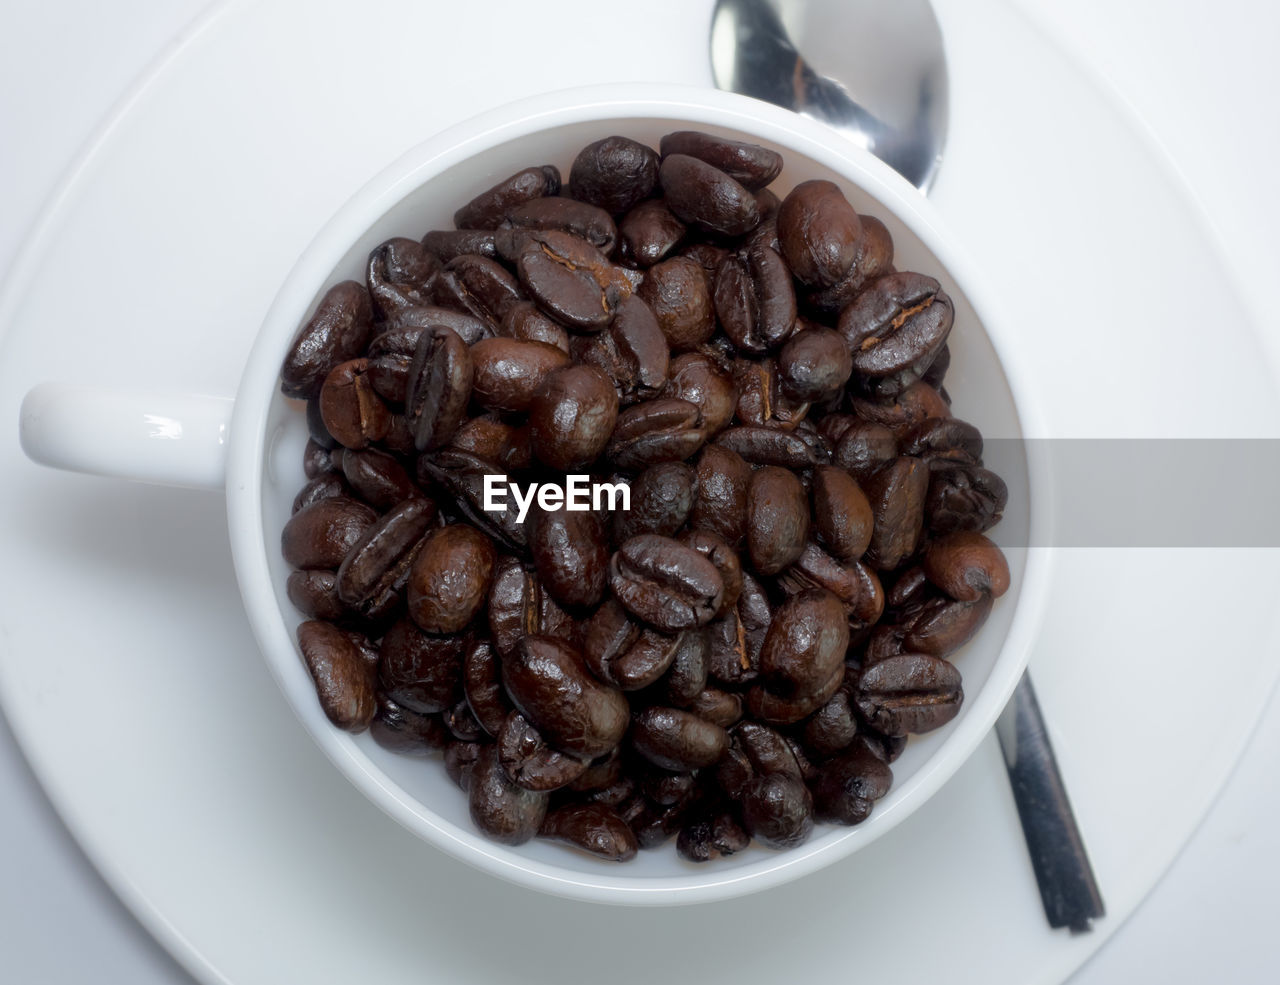 food and drink, food, freshness, indoors, coffee, still life, close-up, coffee - drink, roasted coffee bean, bowl, cup, brown, refreshment, high angle view, coffee cup, white color, no people, drink, table, directly above, crockery, temptation